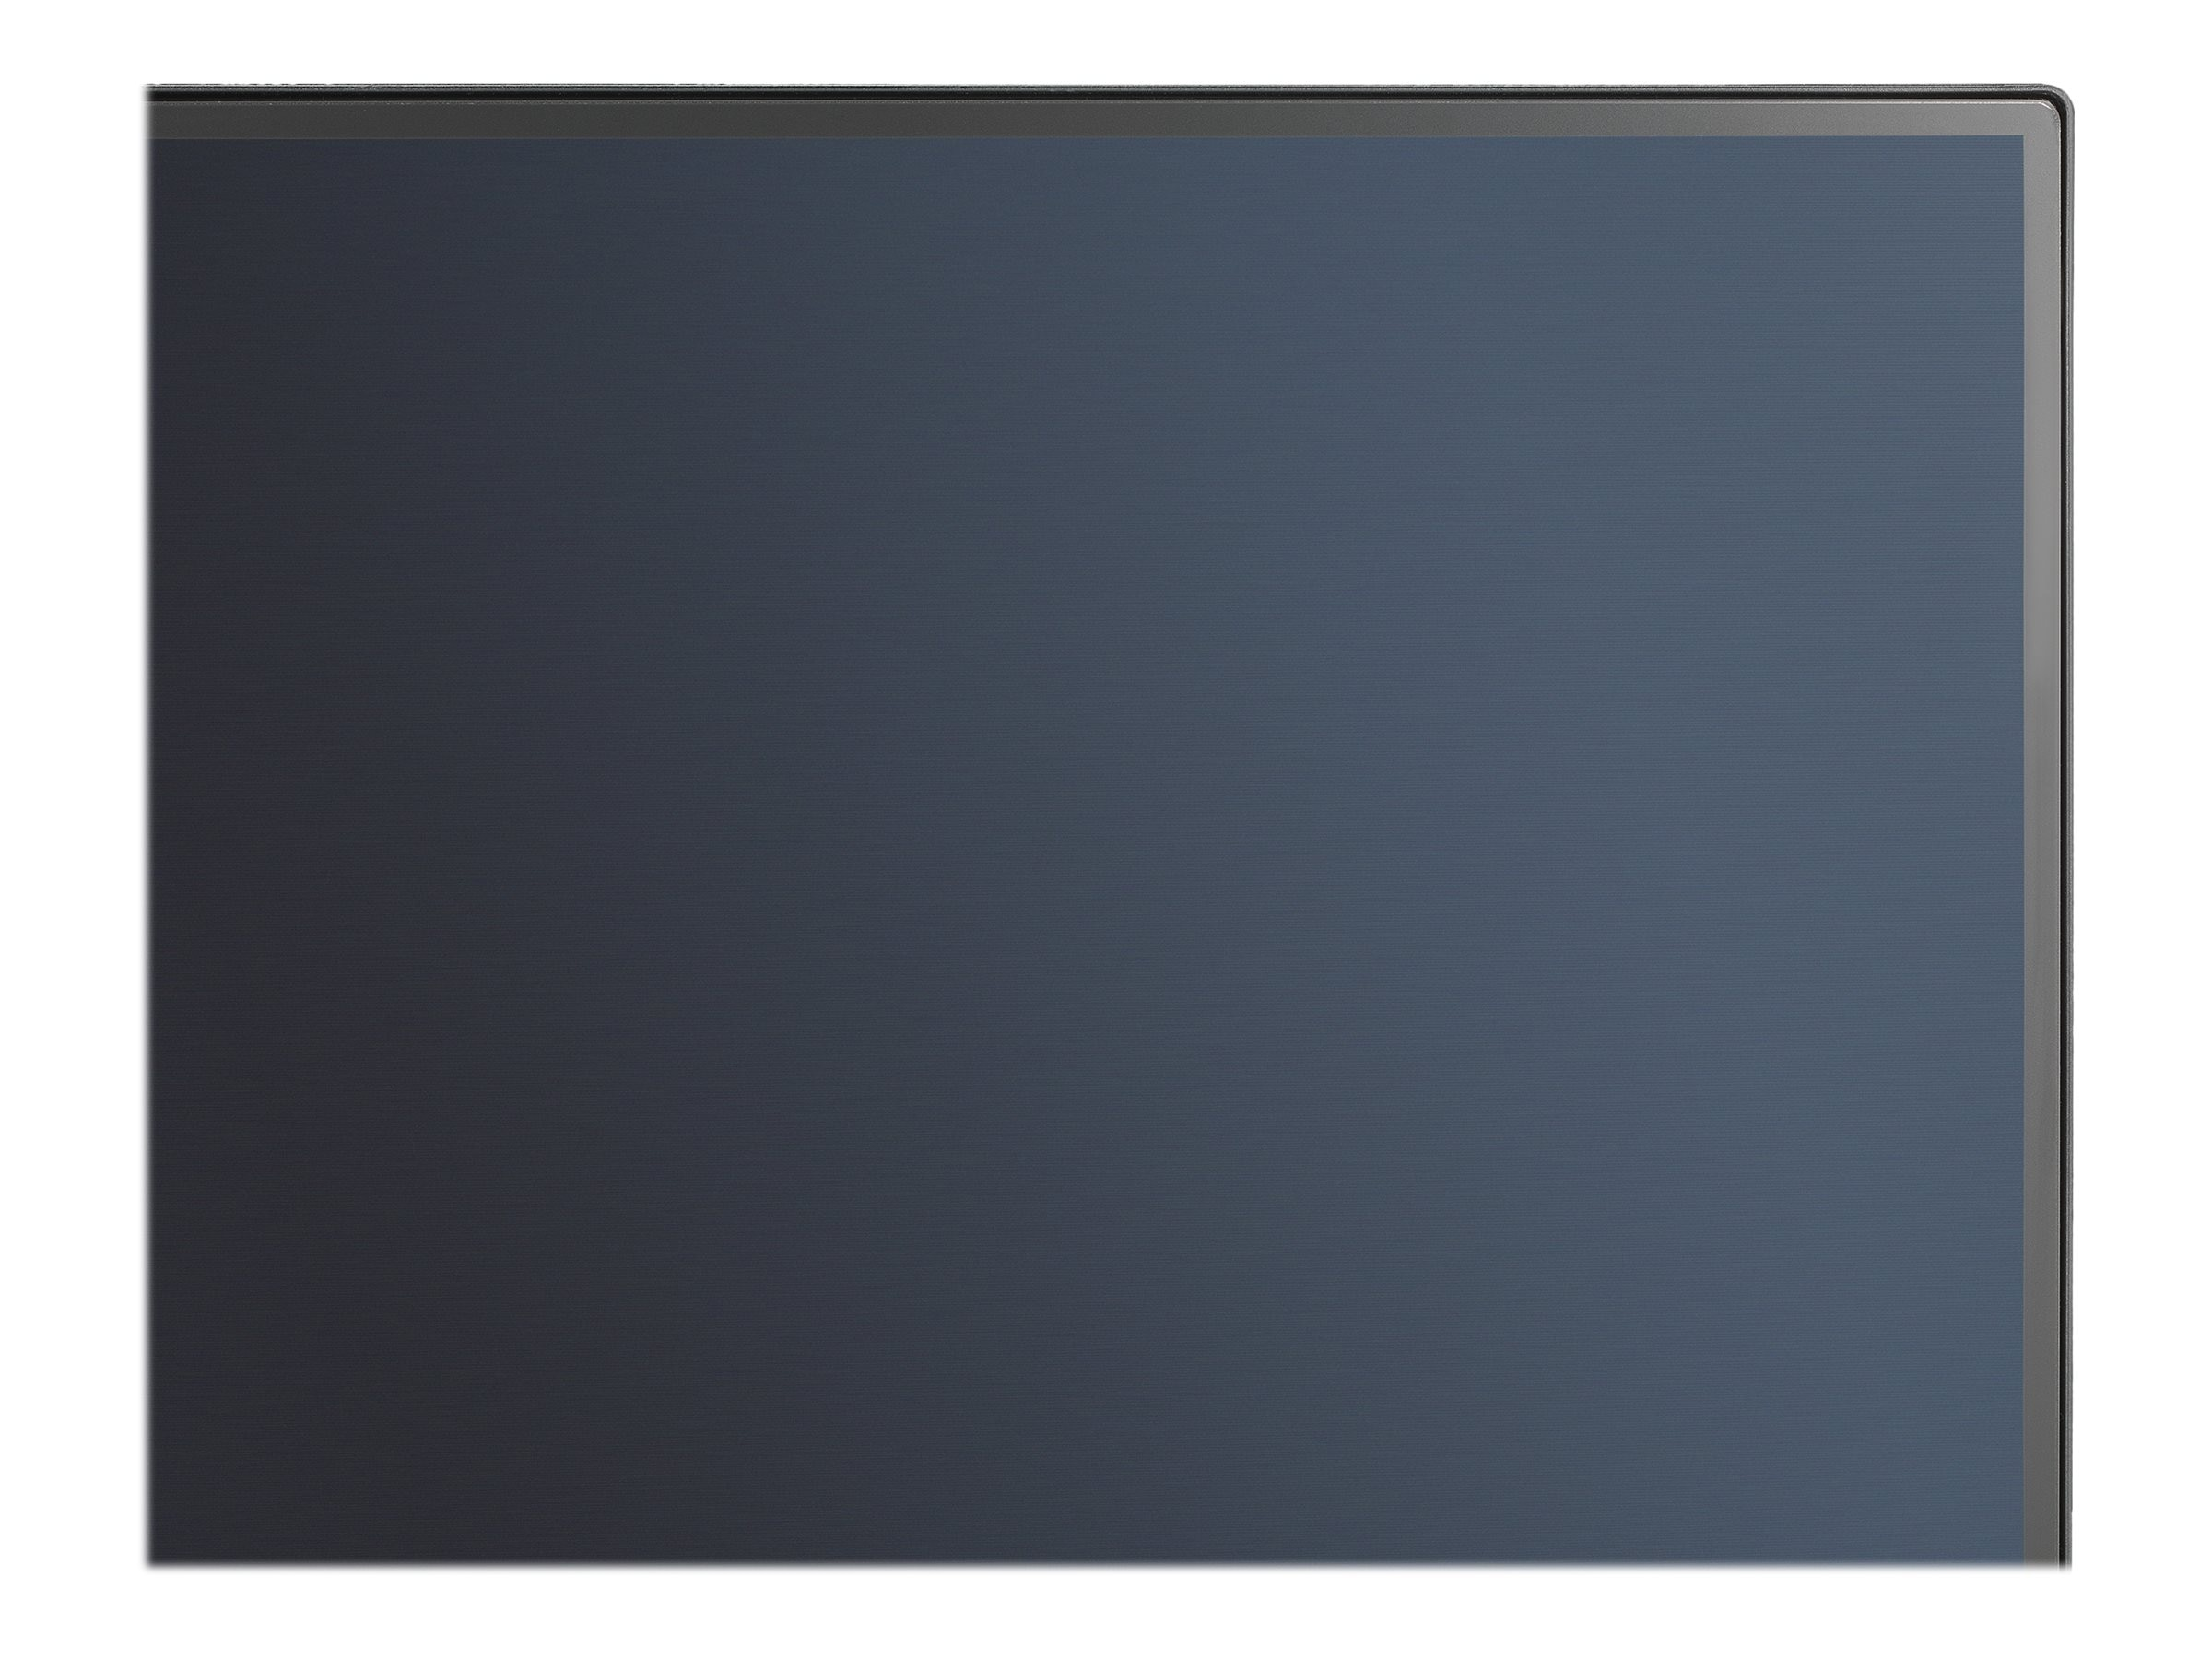 NEC 23.8 EX241UN Full HD LED-LCD Monitor, Black, EX241UN-BK